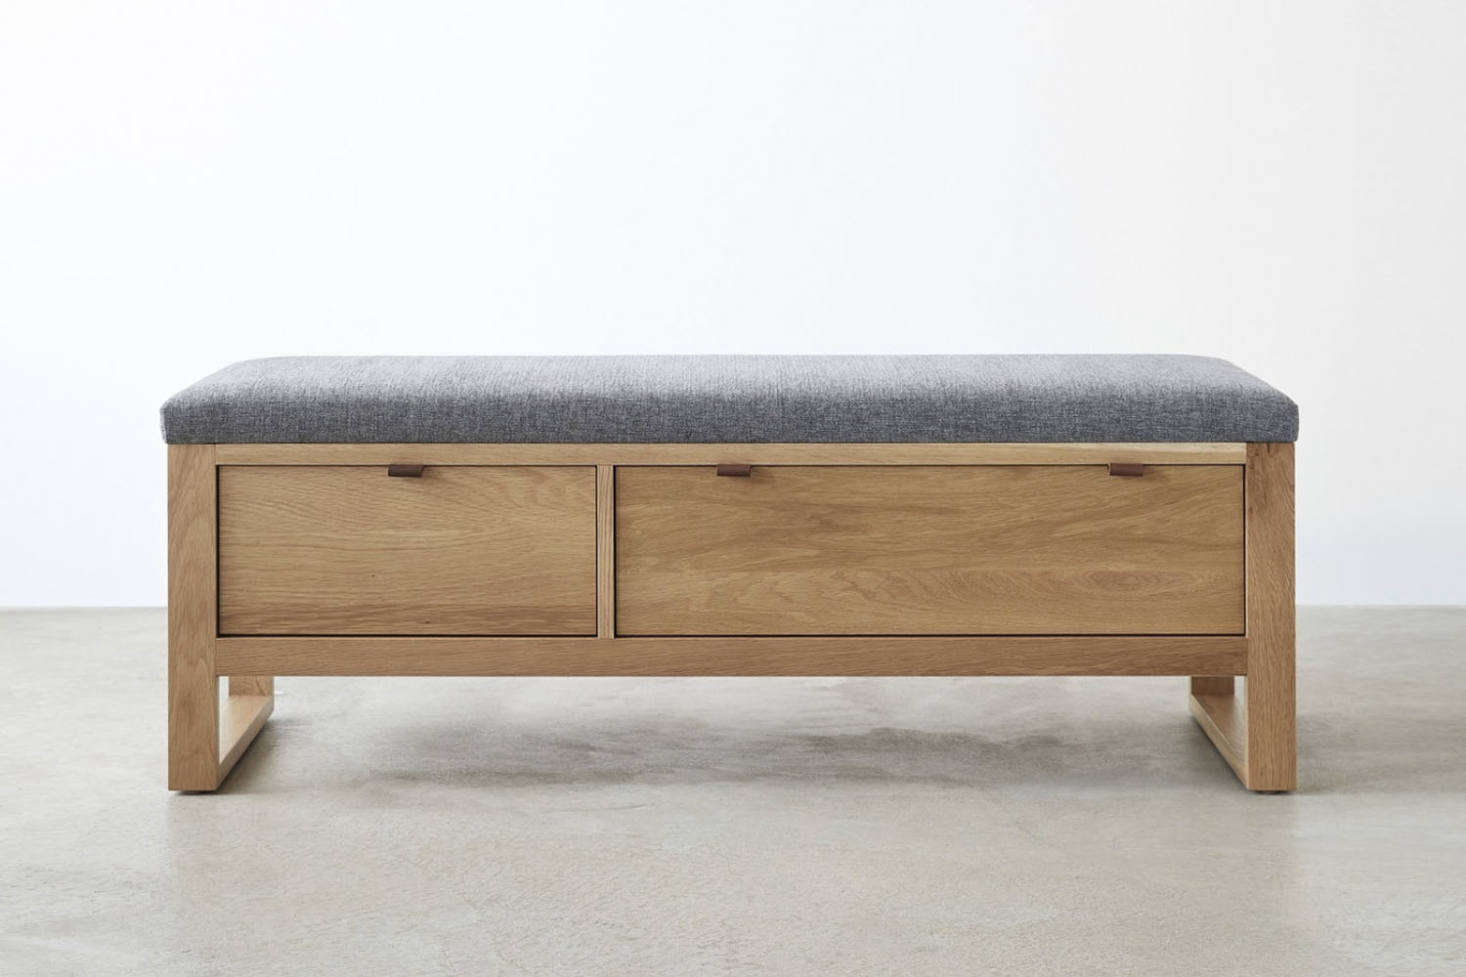 At Unison Home, the Fulton Charcoal Storage Bench is made of solid white oak with an upholstered seat; $src=